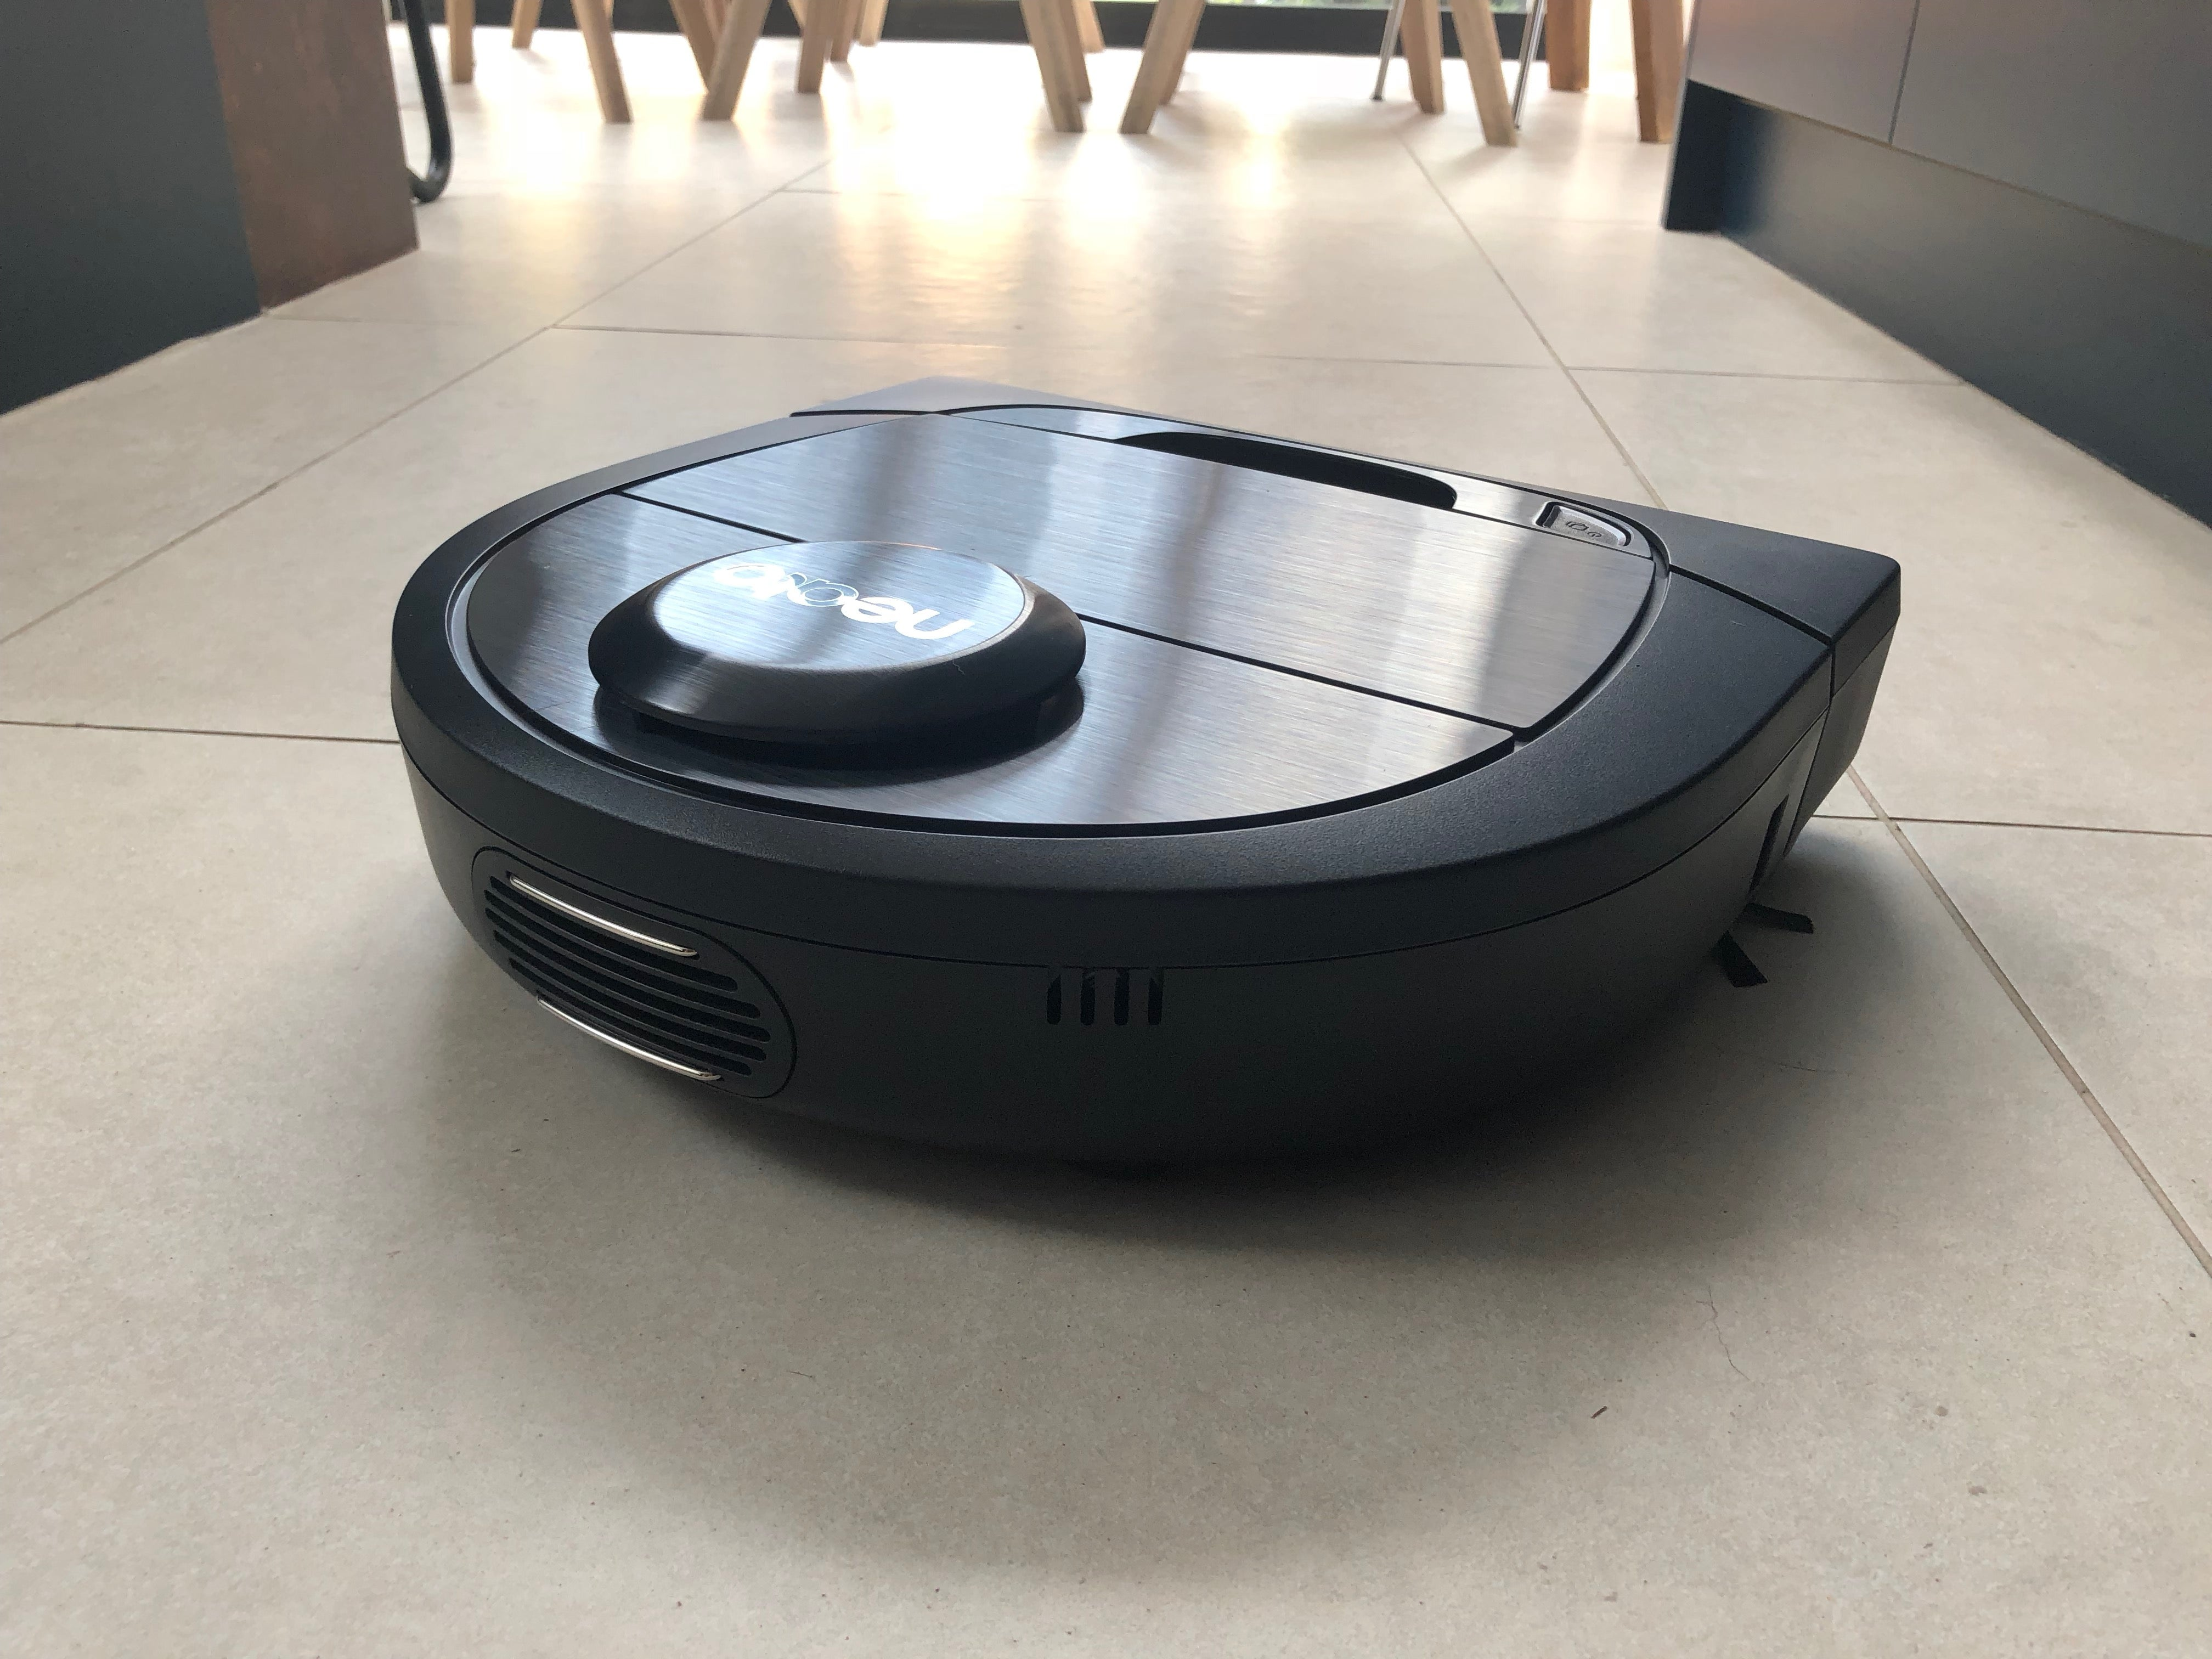 Best robot vacuum cleaners 2019: Clean your home